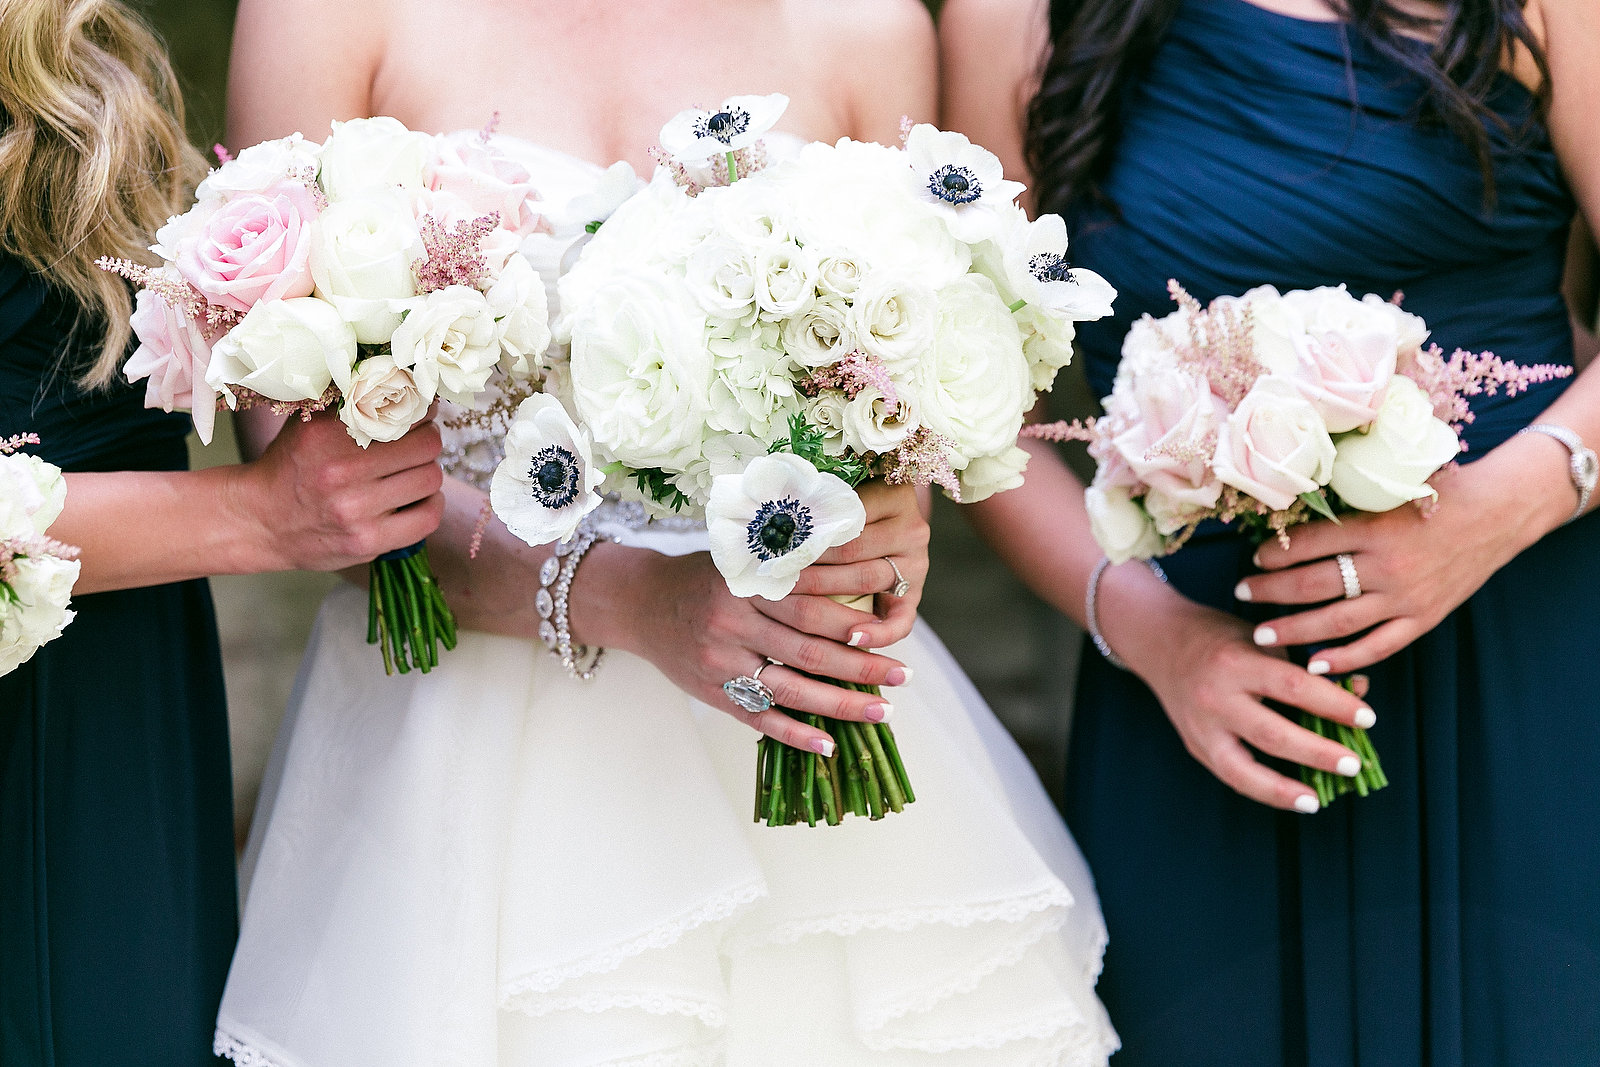 What Are The Different Styles Of Flower Bouquets?